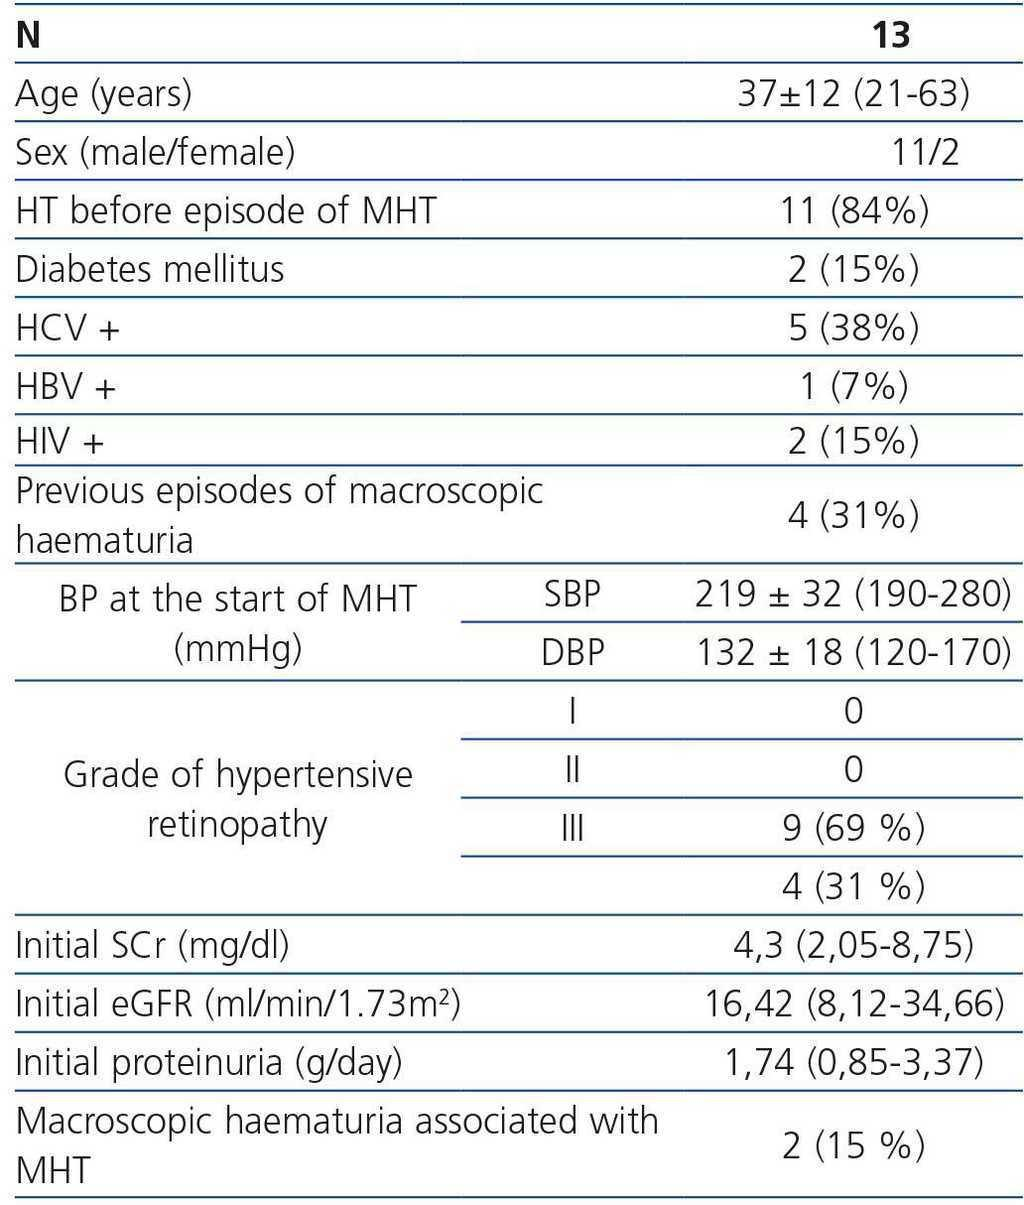 Malignant hypertension: a type of IgA nephropathy